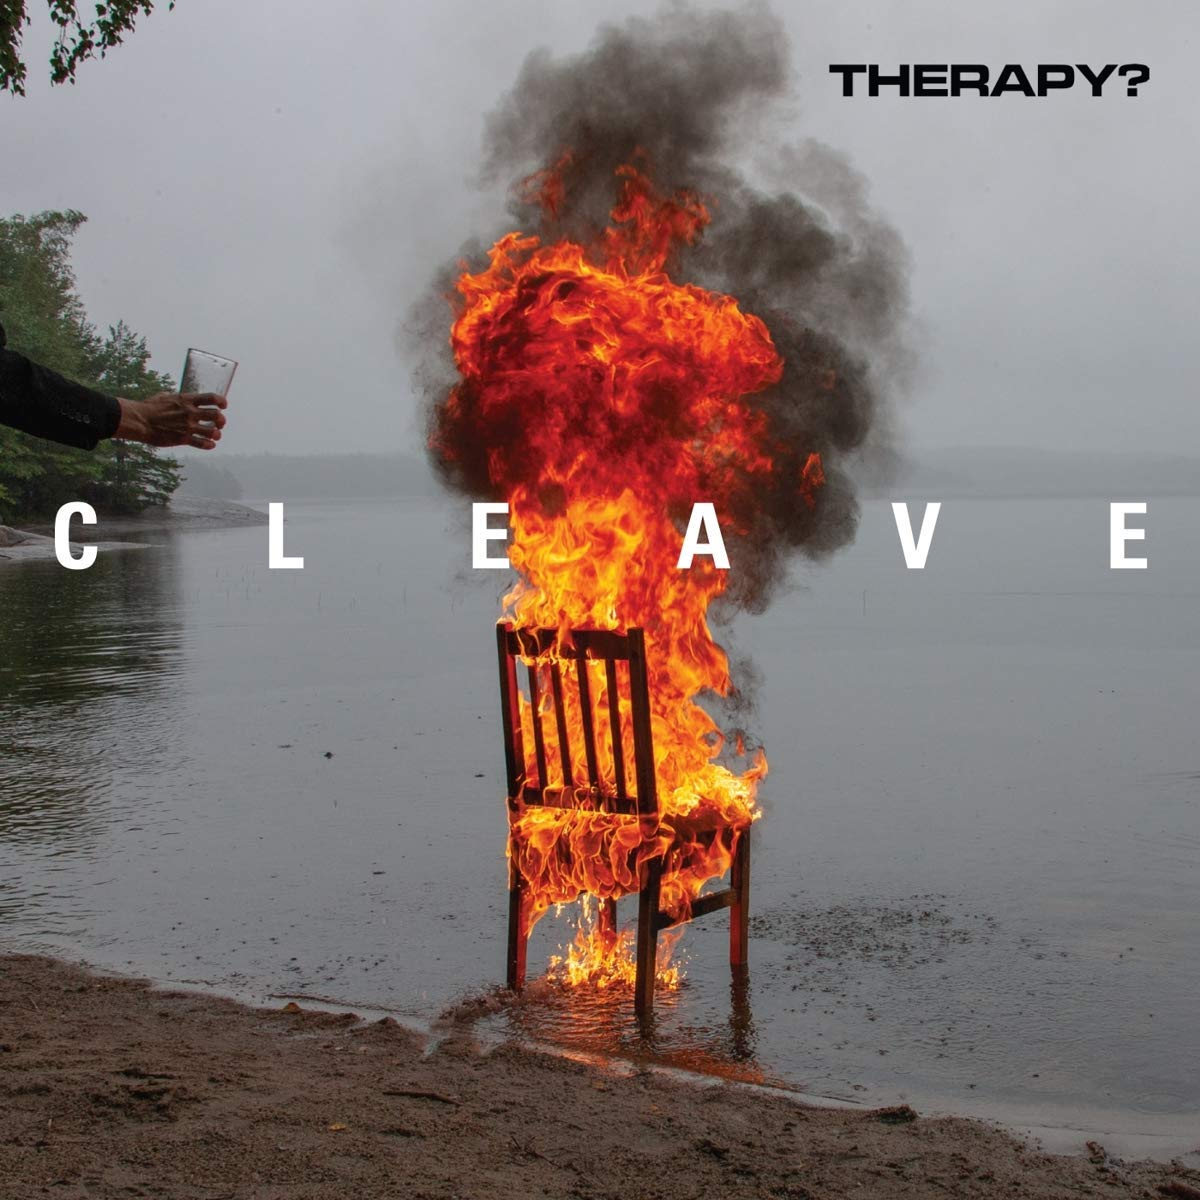 recensione Therapy?- Cleave